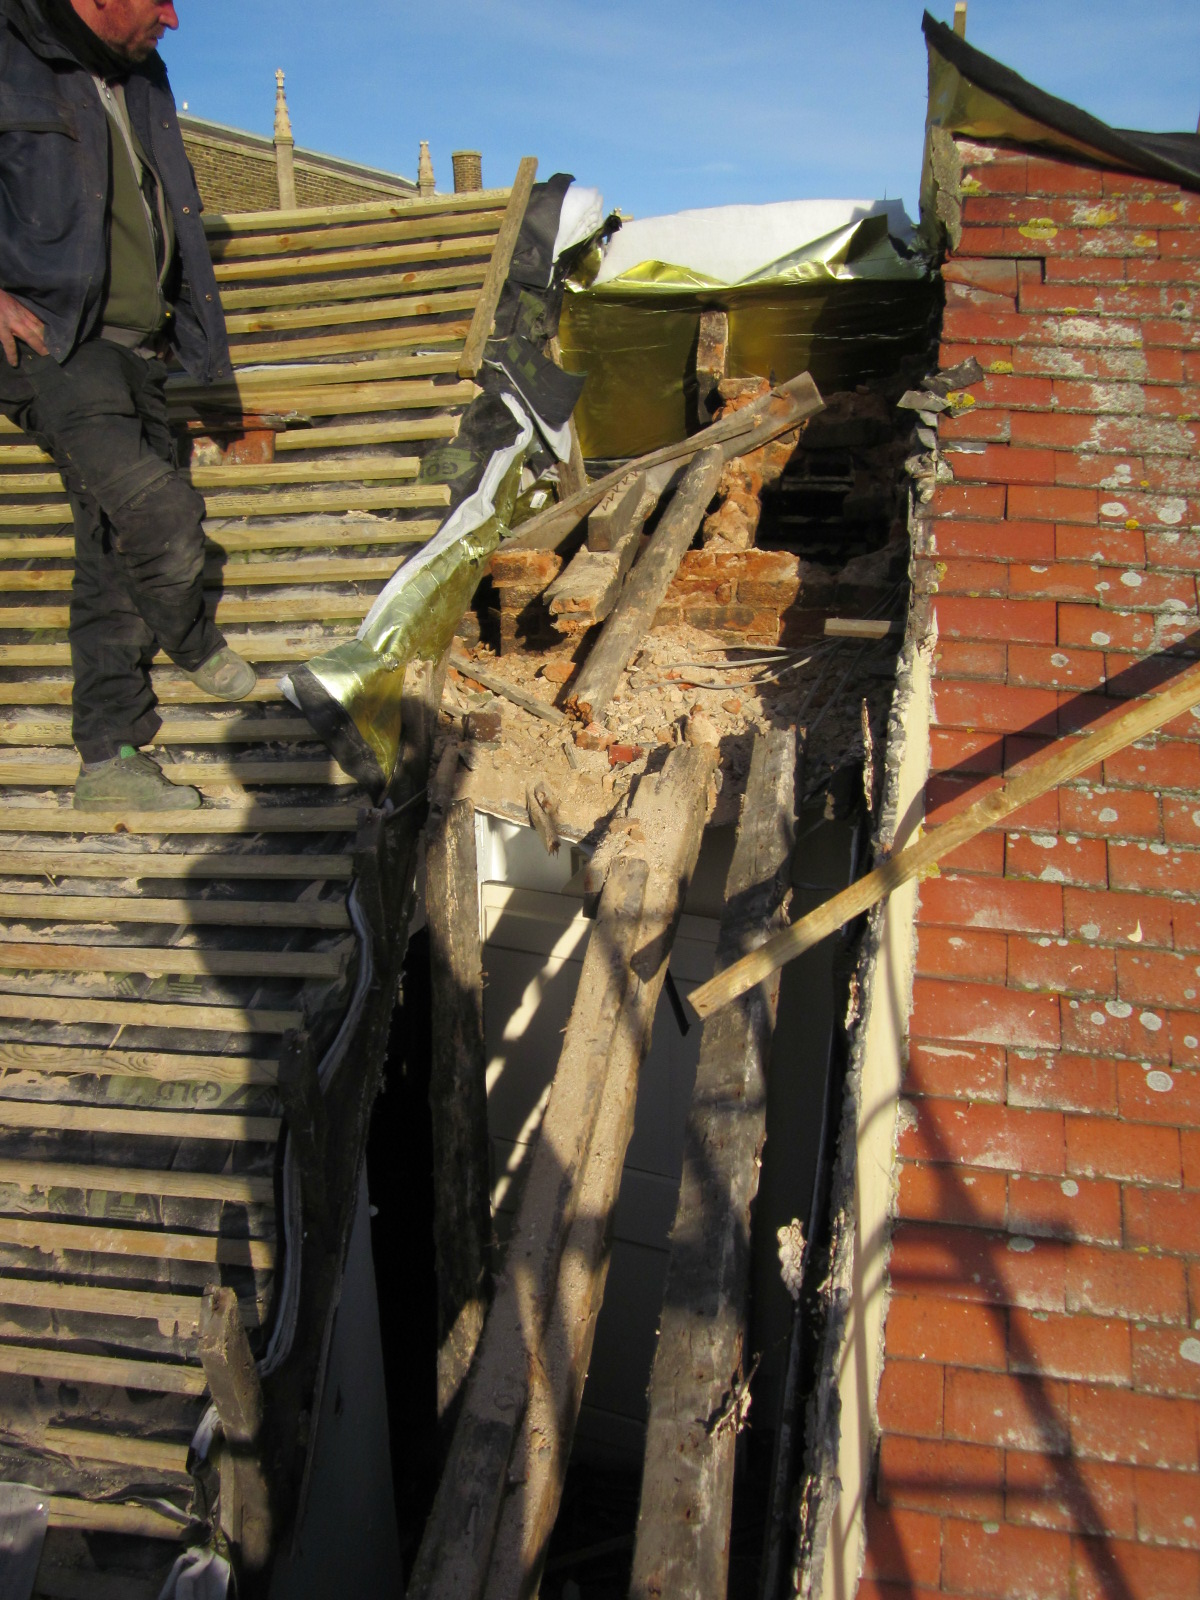 Chimney stacfk collapses at town's oldest house